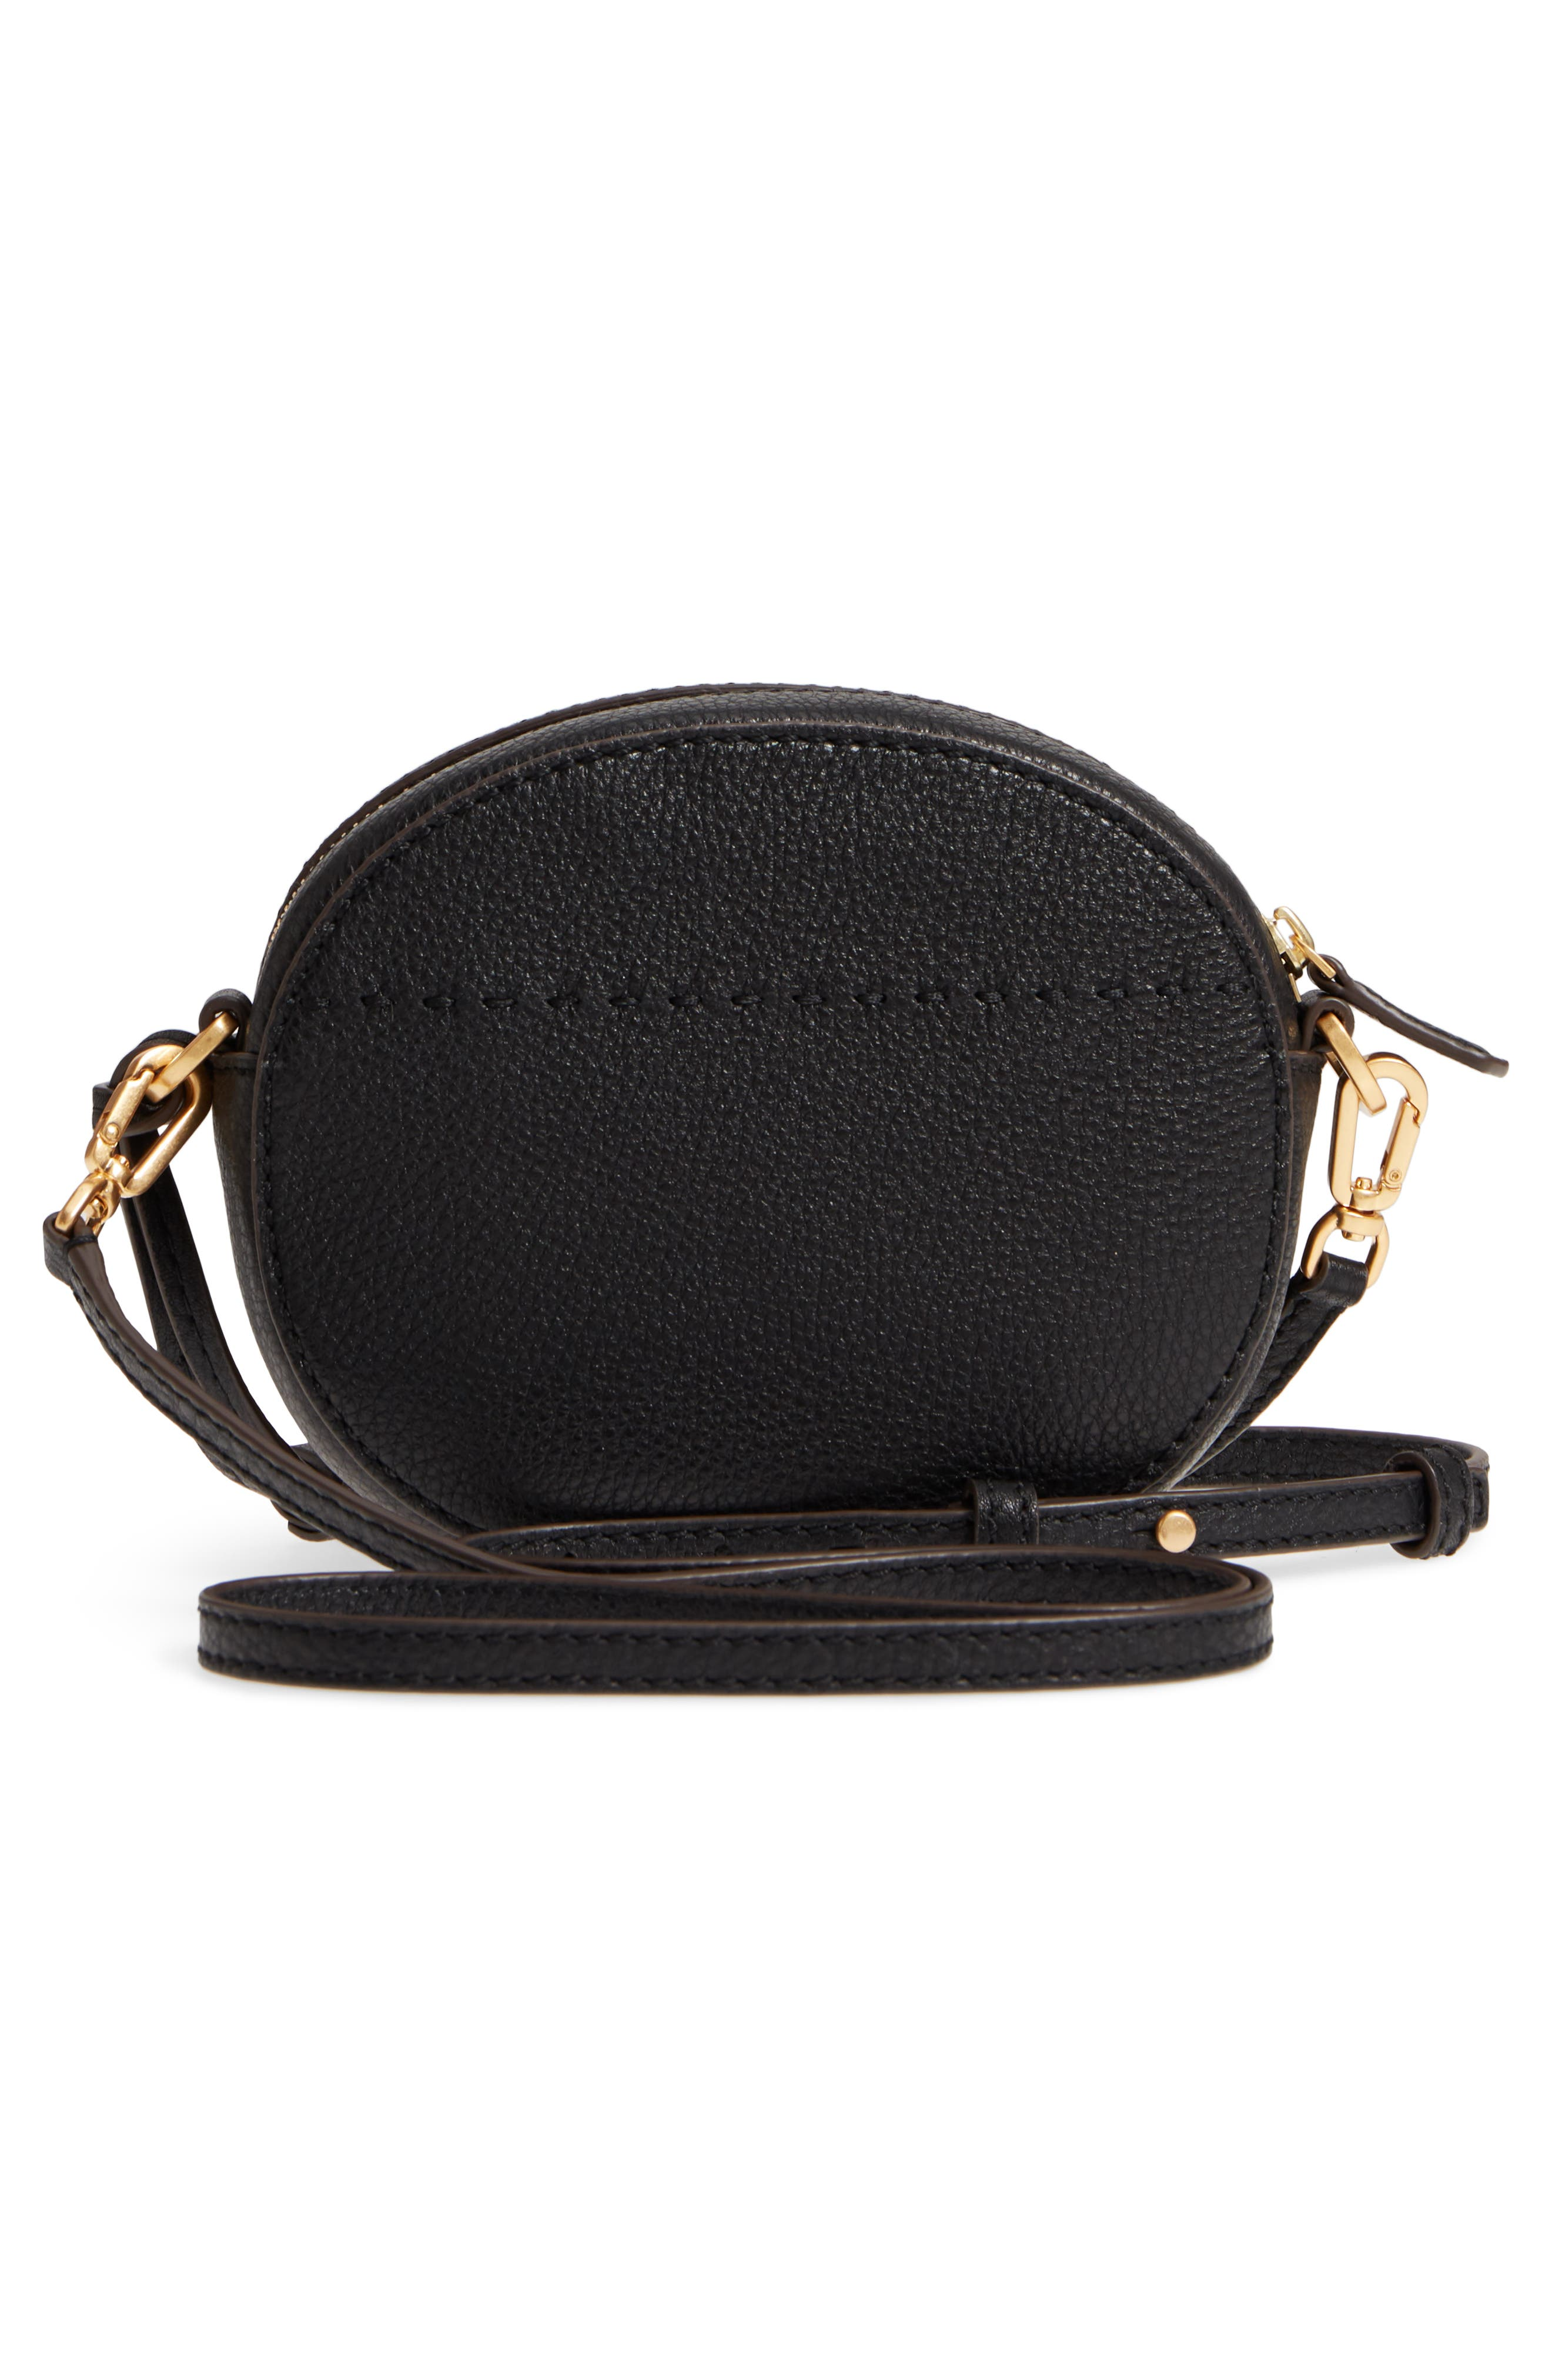 McGraw Leather Crossbody Bag,                             Alternate thumbnail 3, color,                             001